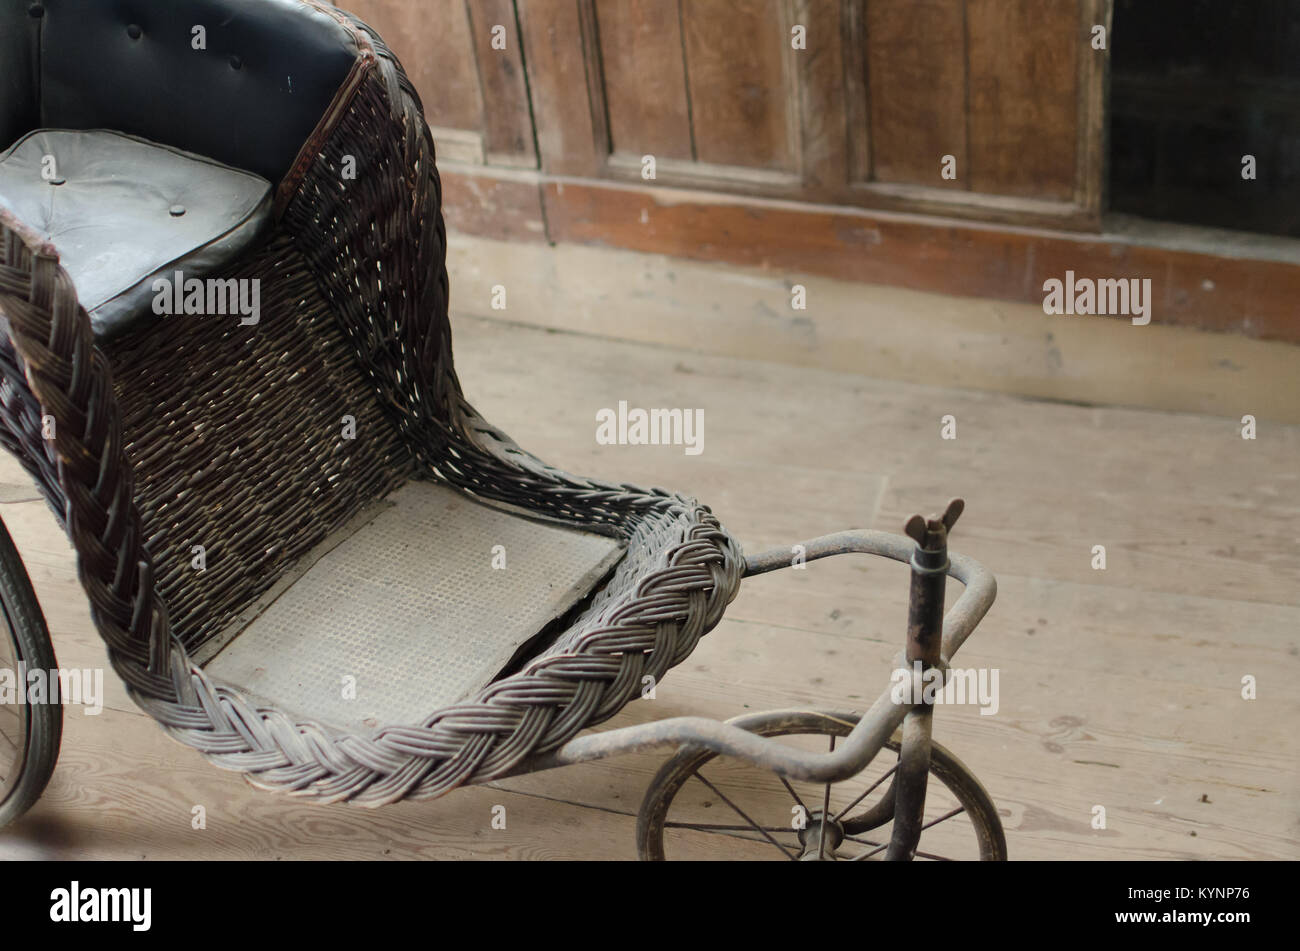 A vintage/retro antique wheelchair, sitting gathering dust in an old  abandoned house. - Vintage Wheelchair Stock Photos & Vintage Wheelchair Stock Images